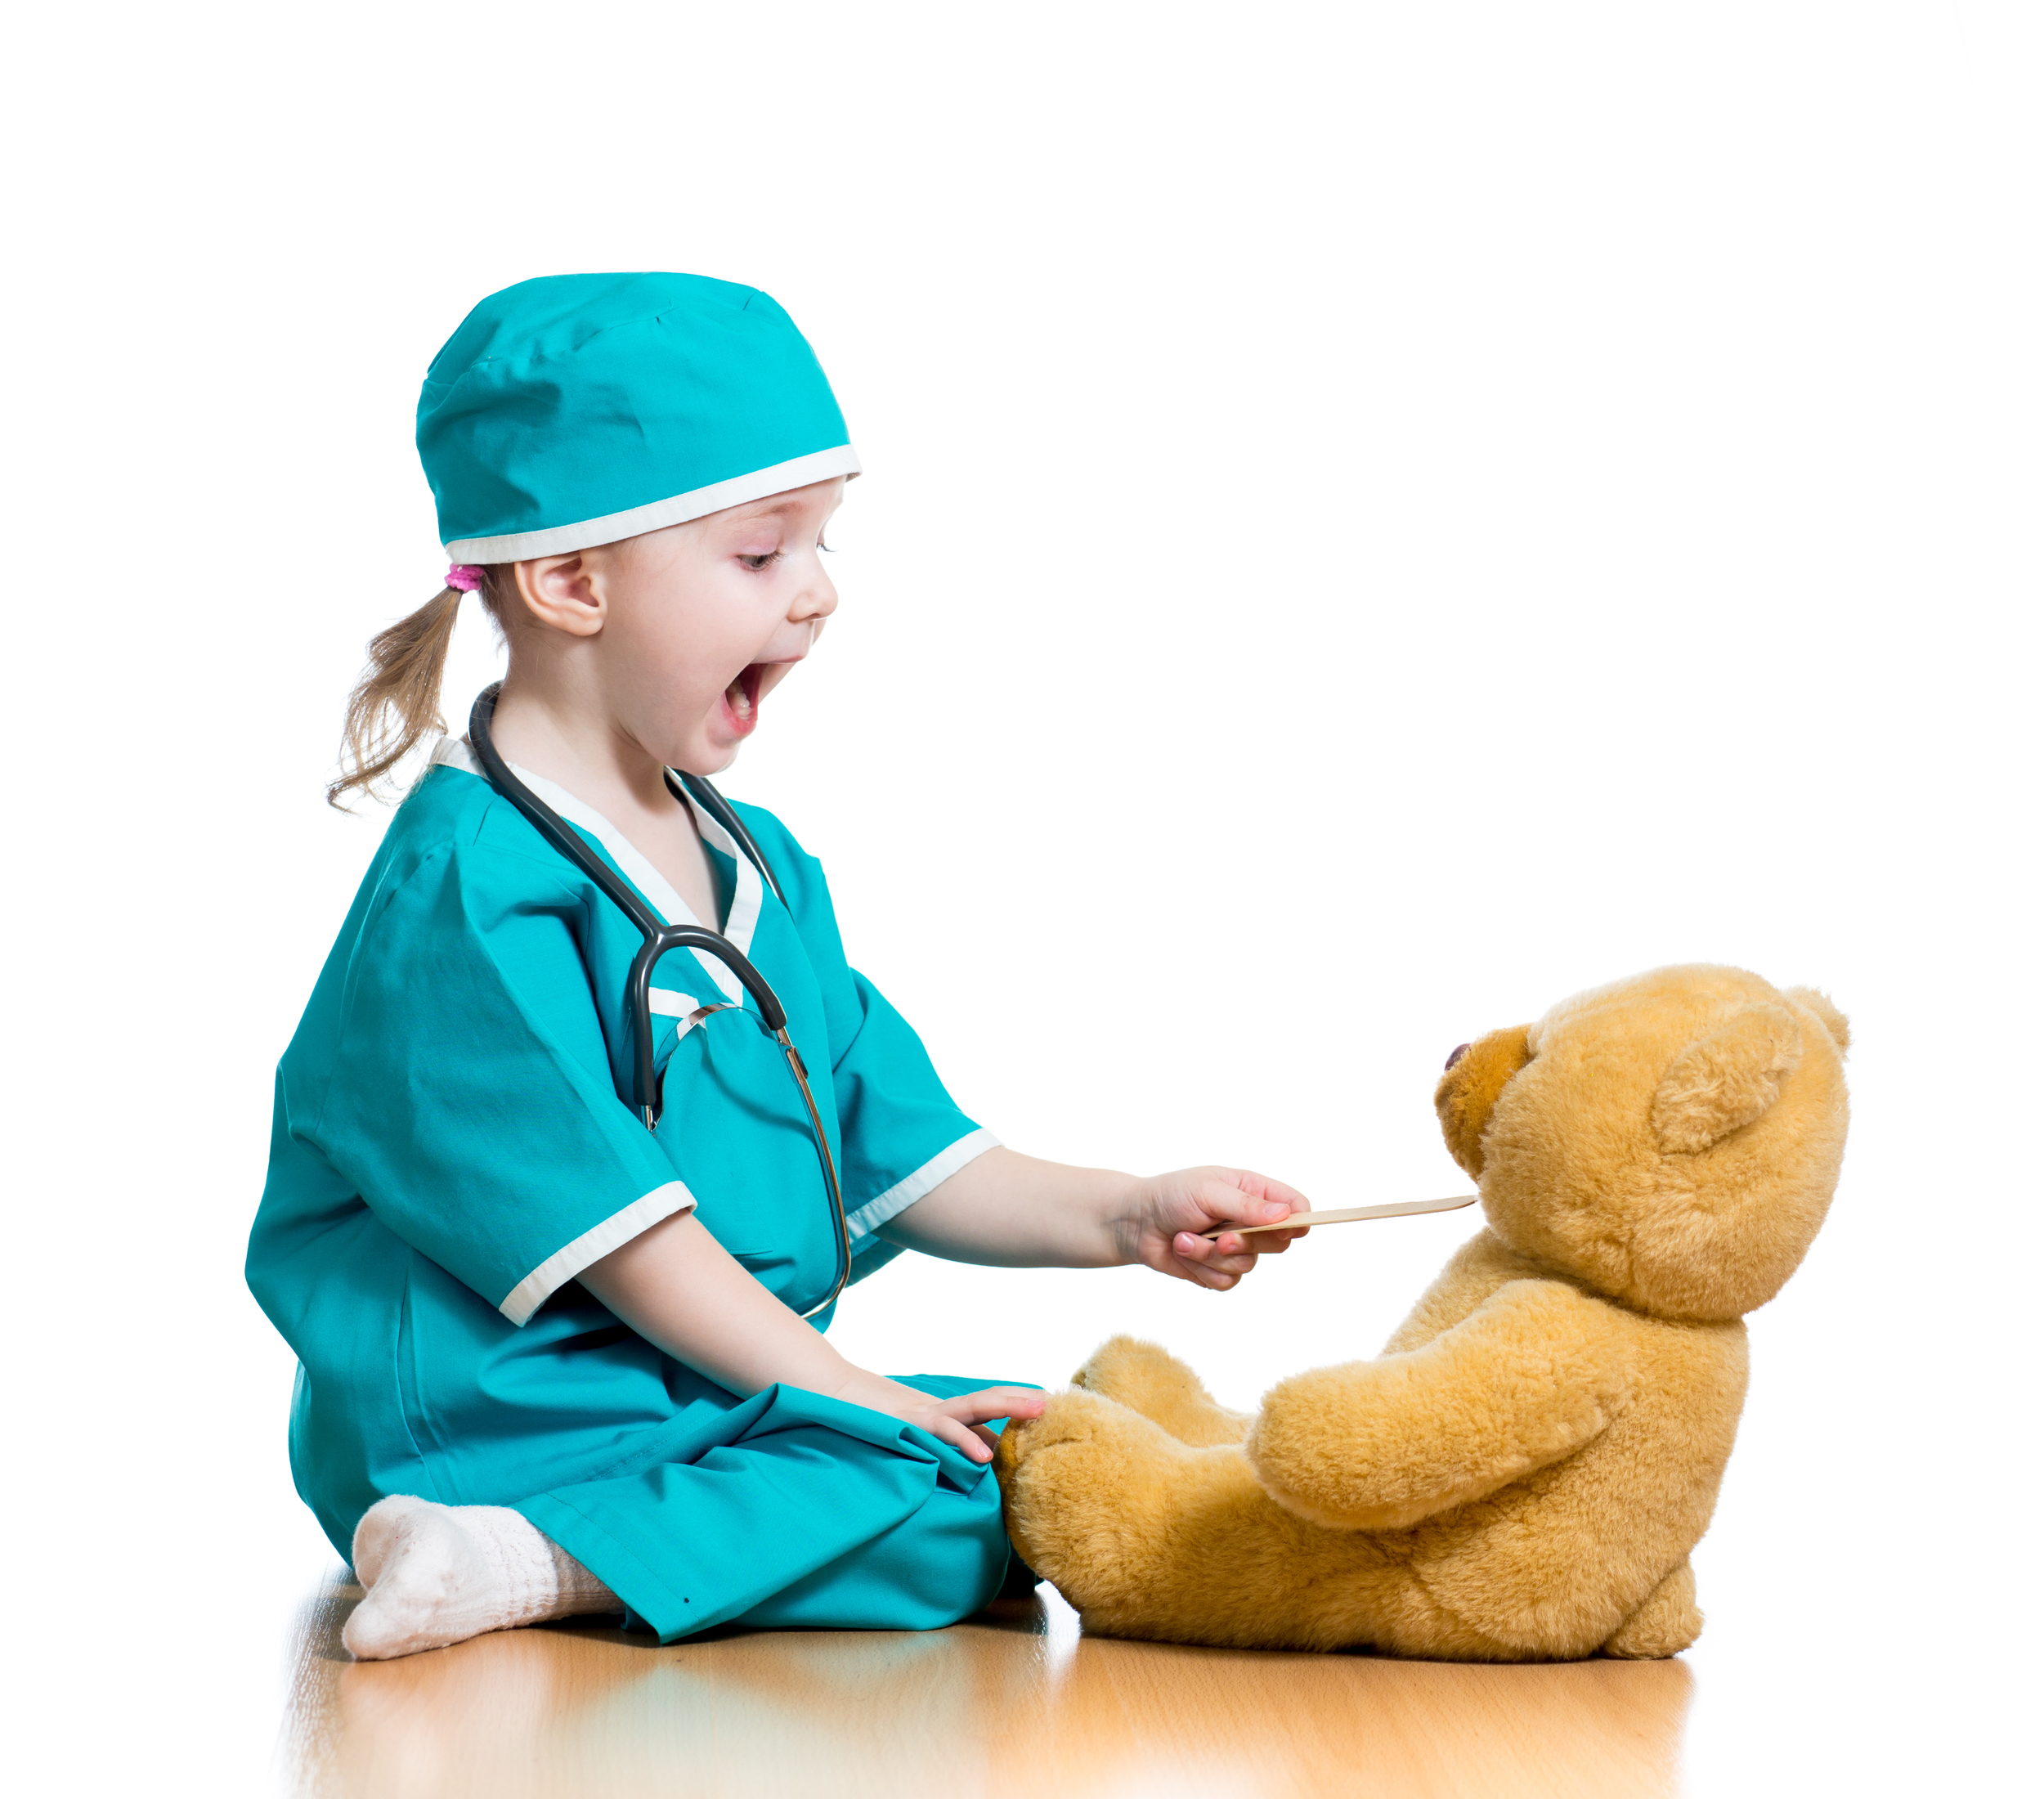 Play therapy in Rancho cucamonga, Claremont, Upland, and La Verne